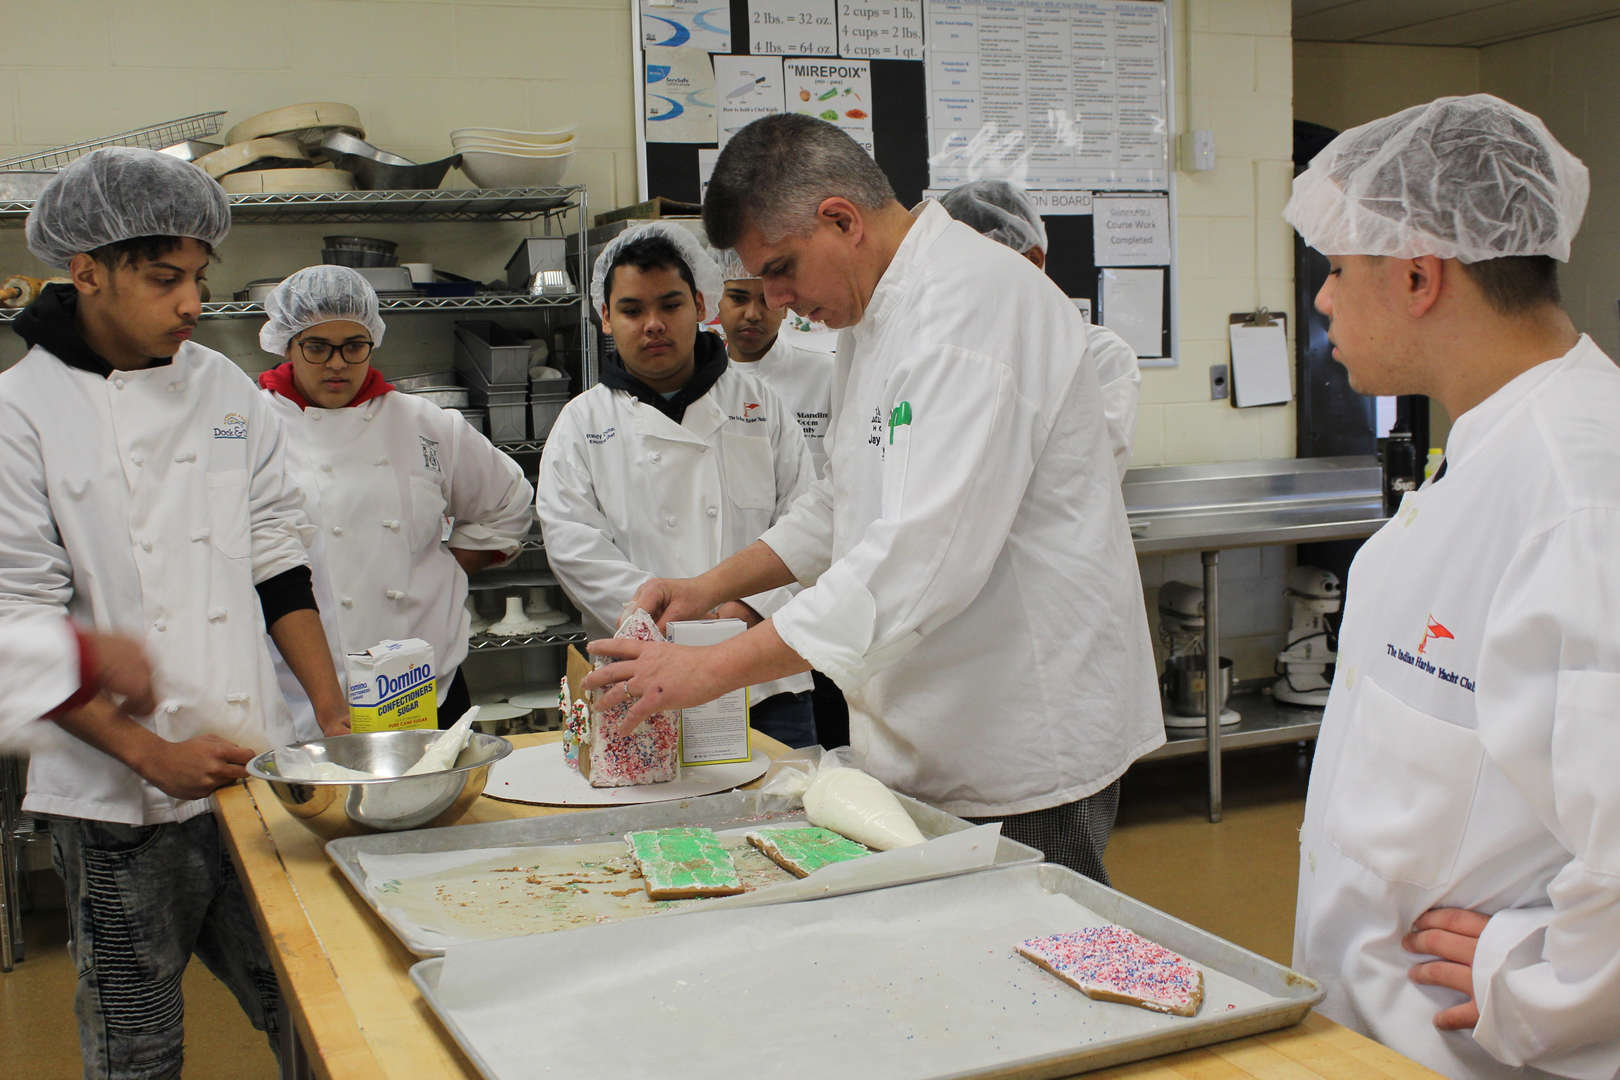 Teacher instructs students on constructing gingerbread houses